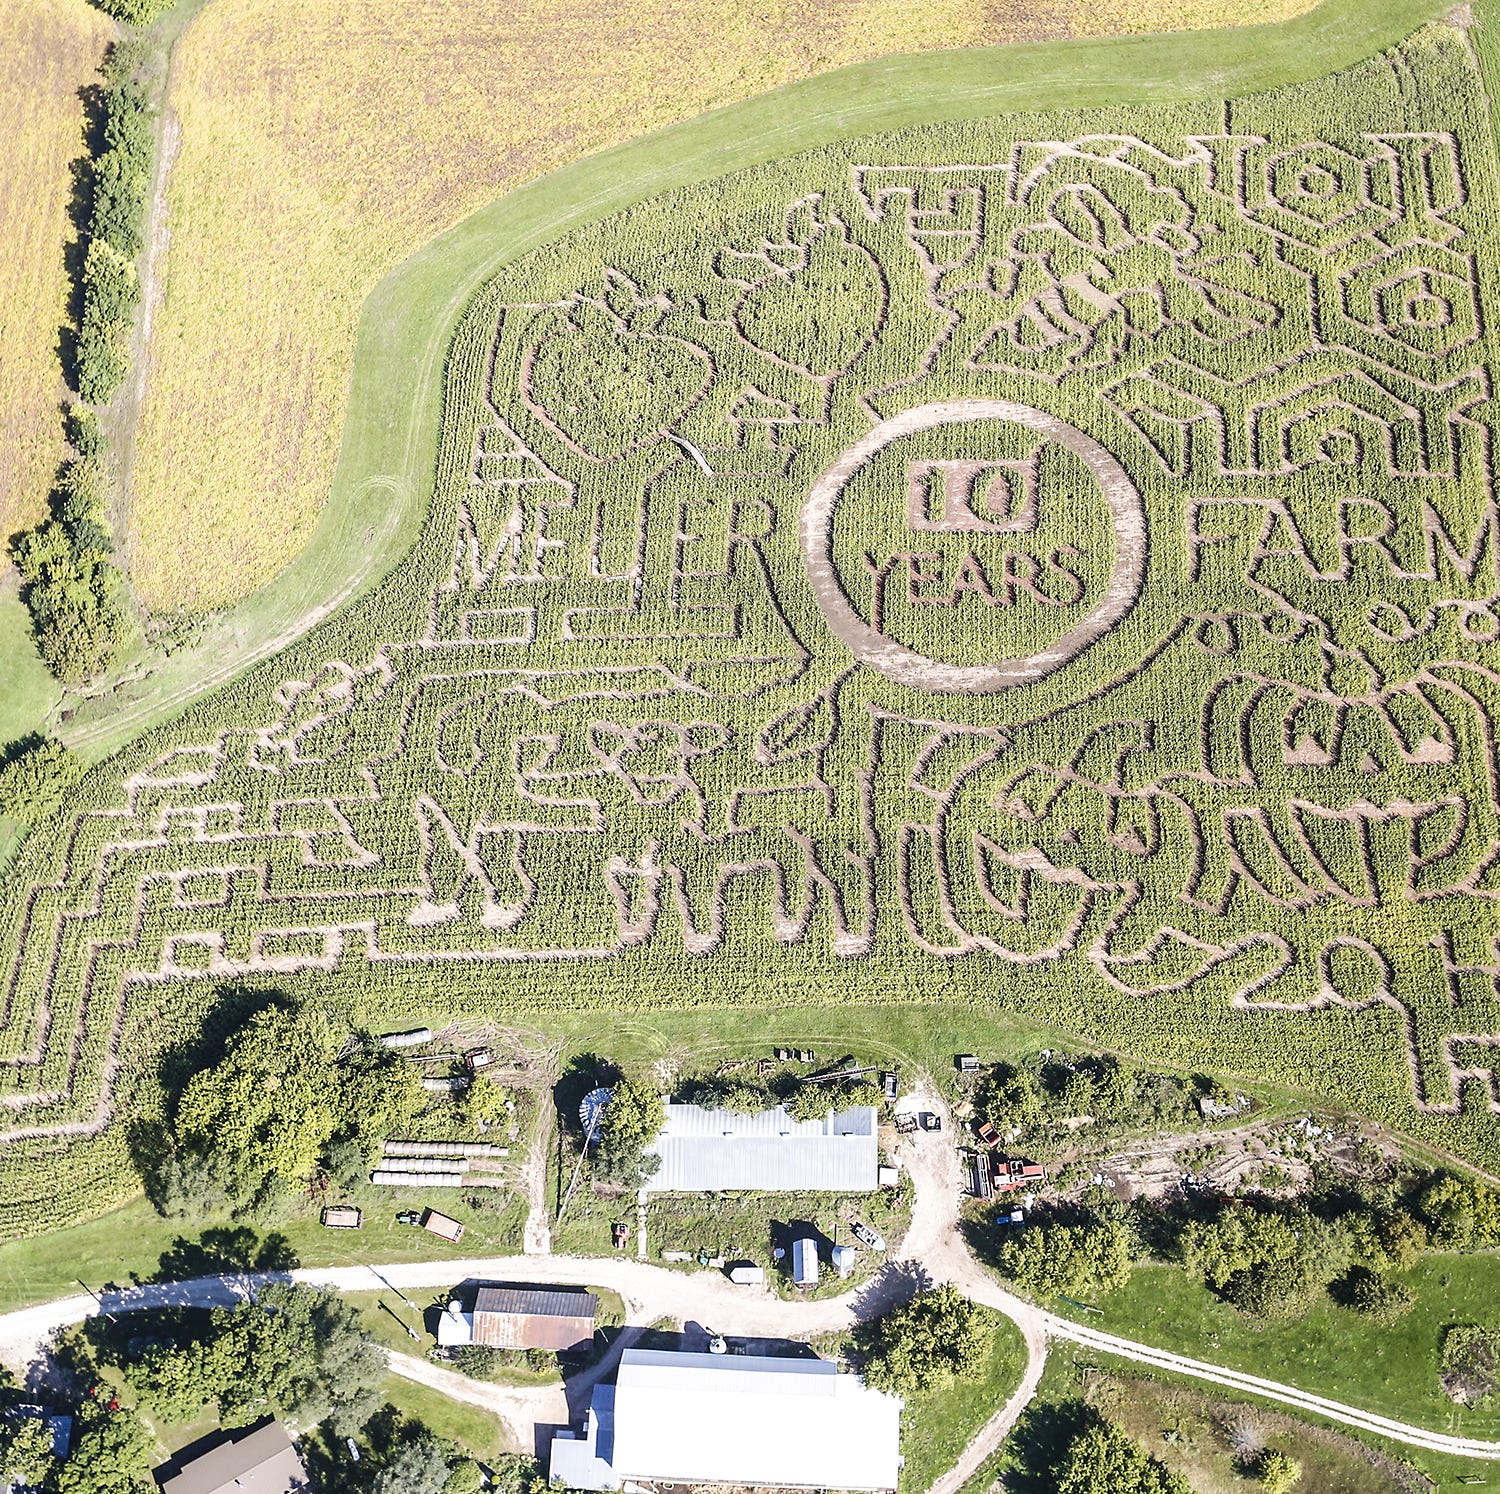 Get lost! Meuer Farm's 10th anniversary corn maze opens this weekend